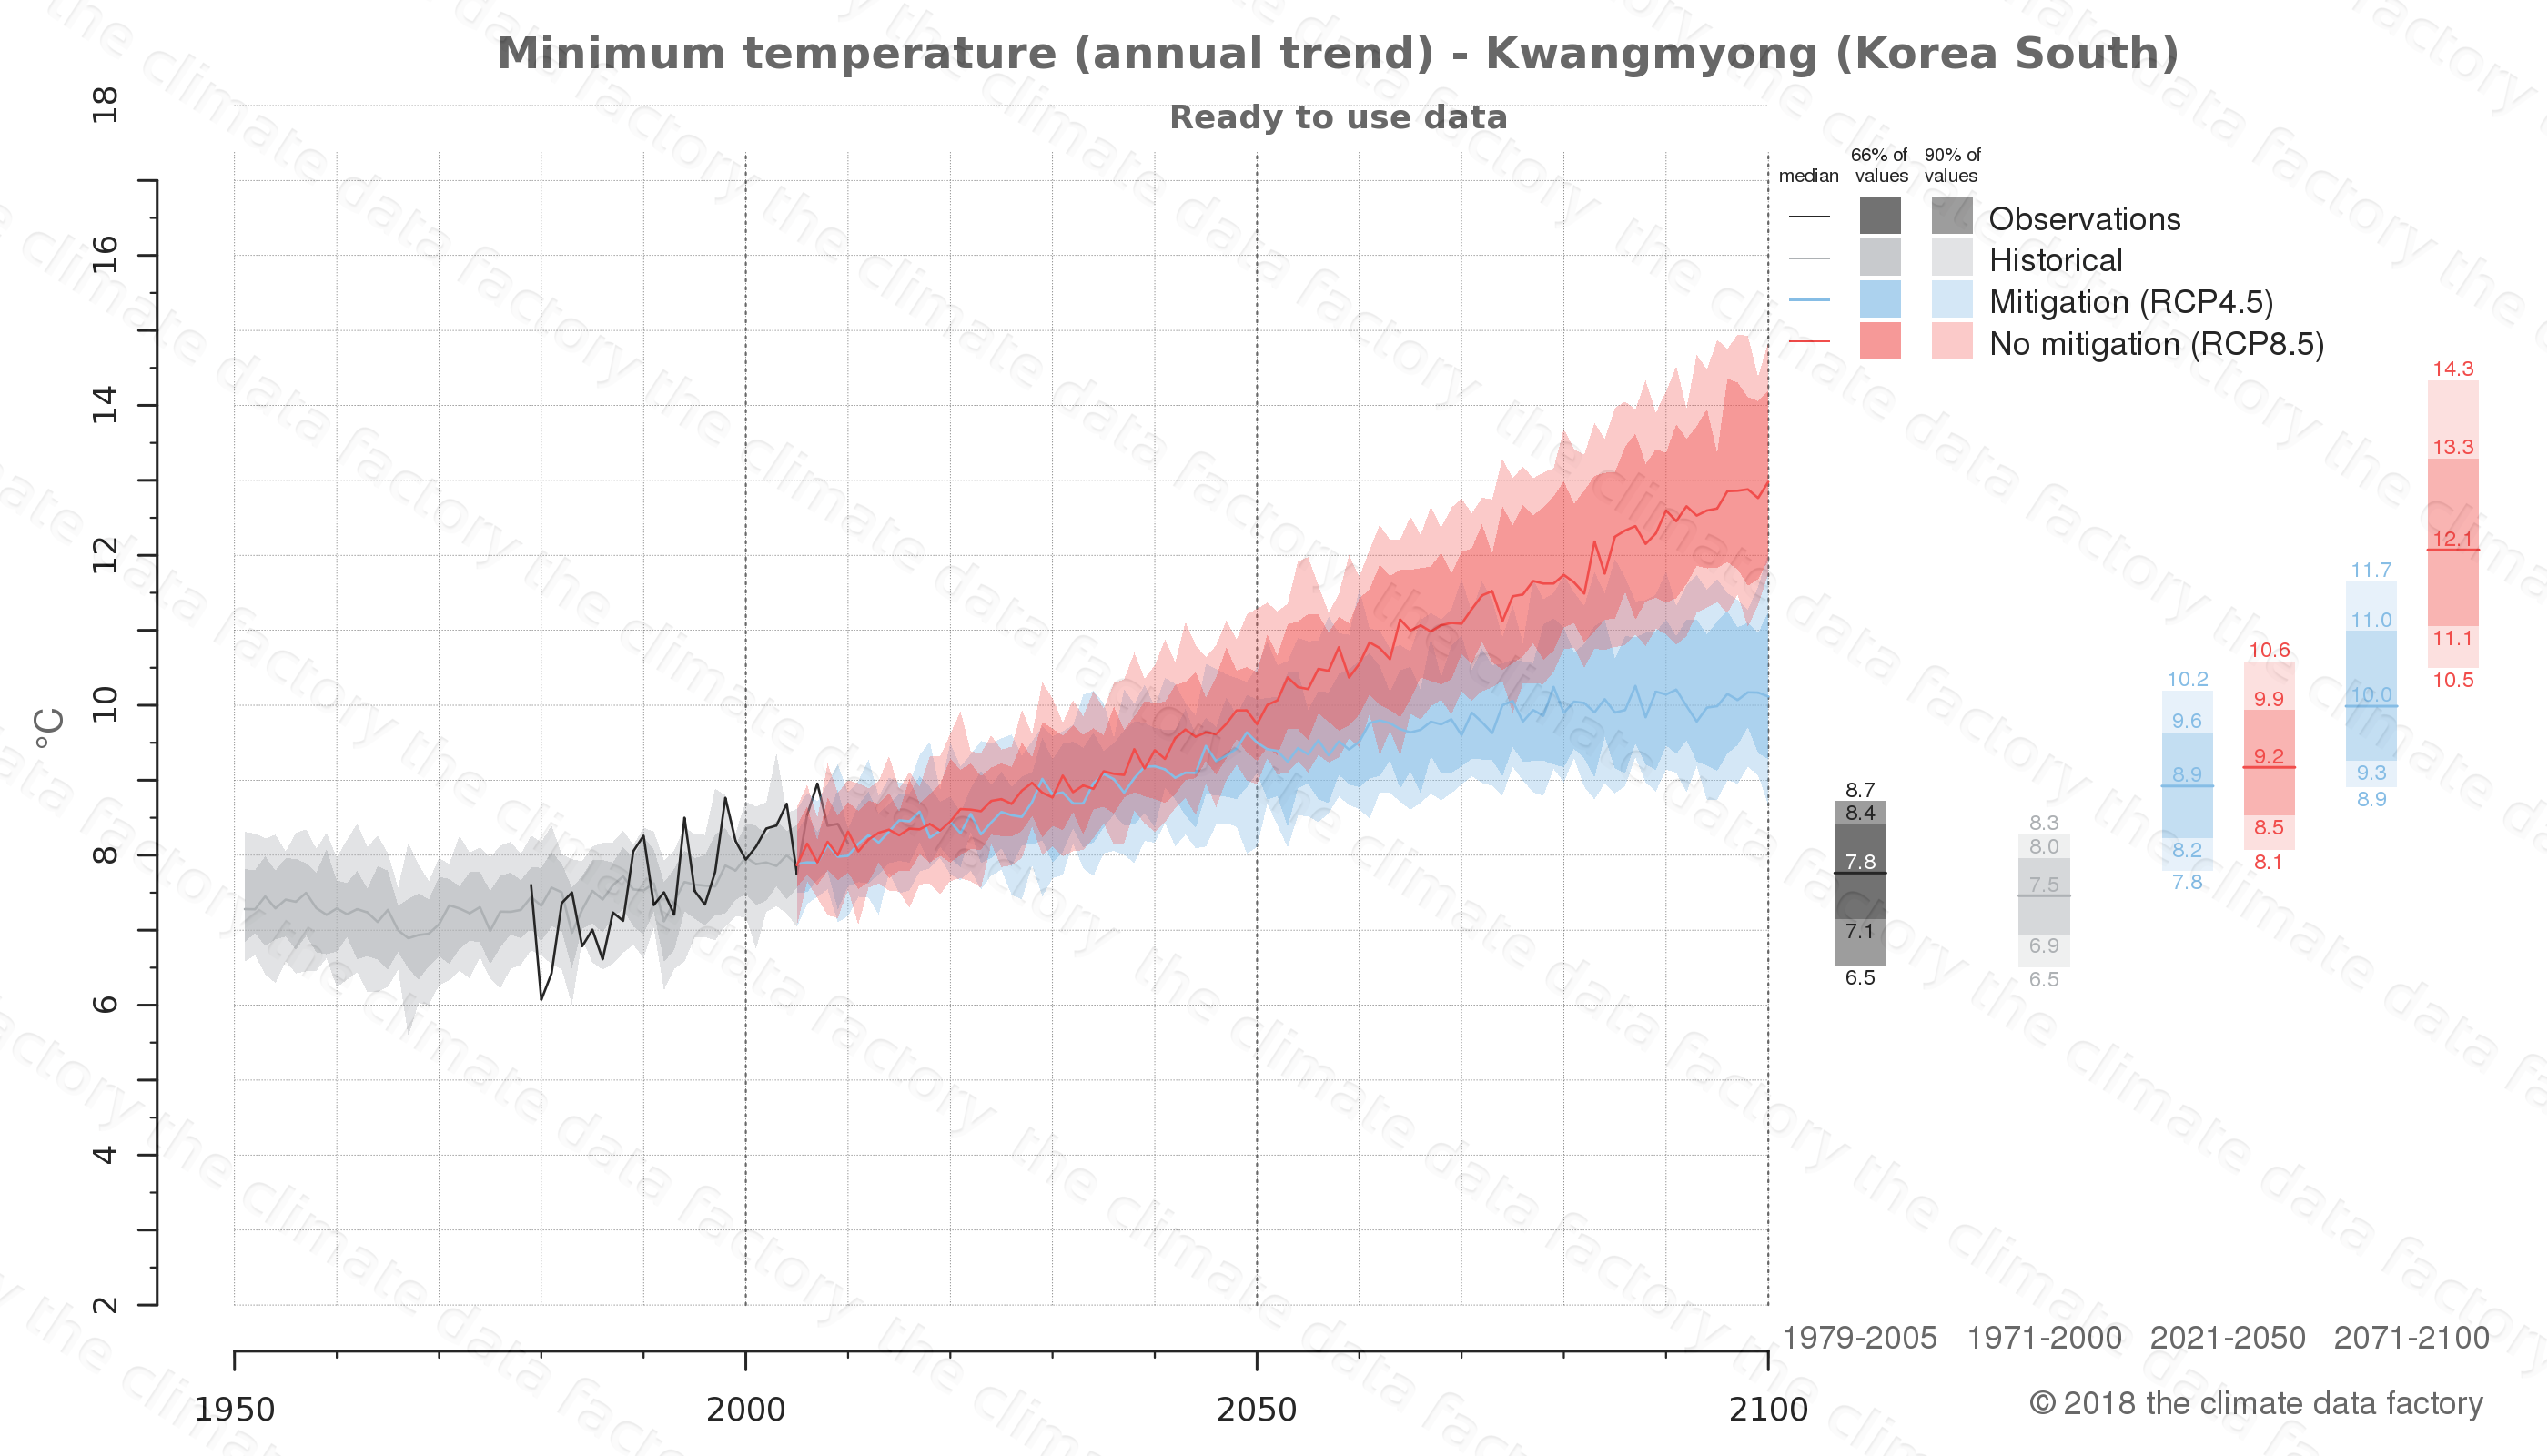 climate change data policy adaptation climate graph city data minimum-temperature kwangmyong south korea